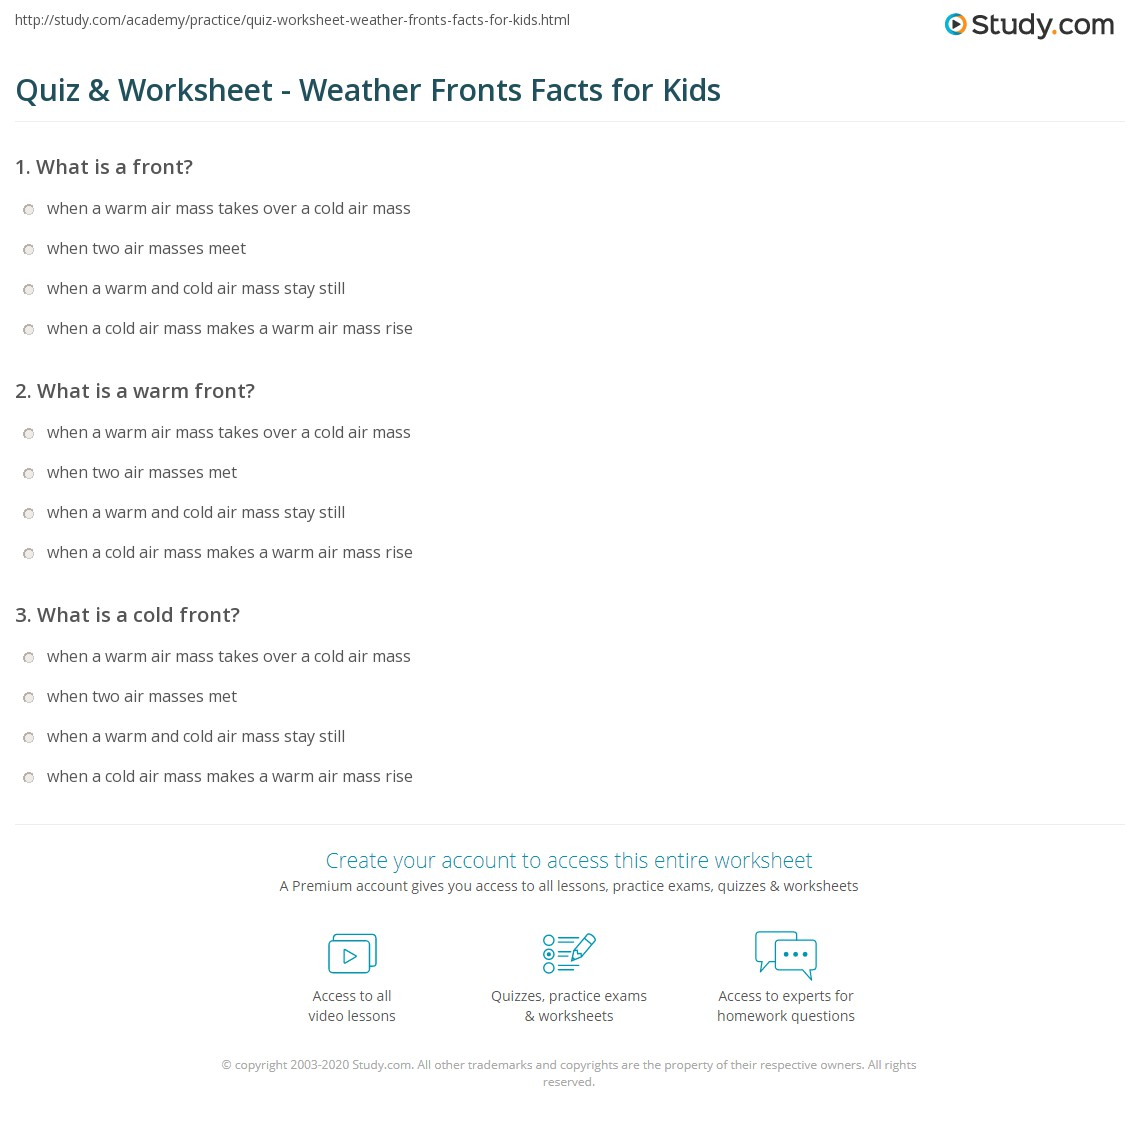 Quiz Worksheet Weather Fronts Facts For Kids Study